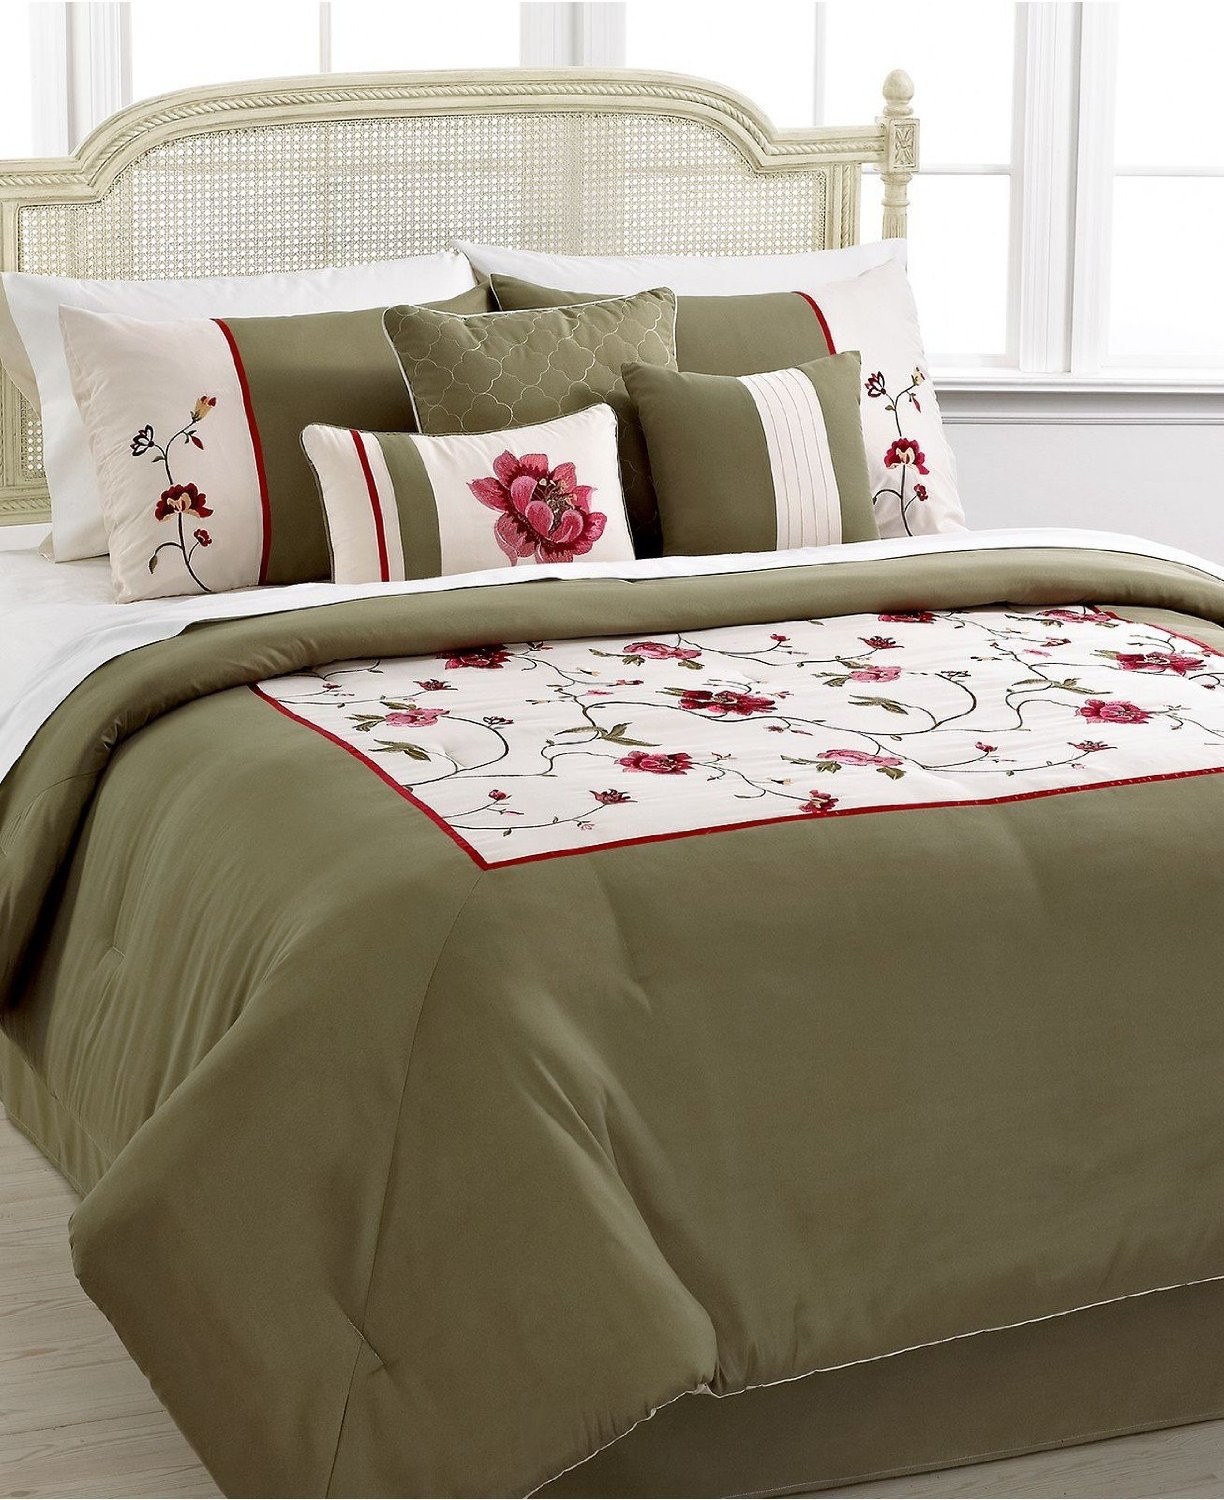 Best ideas about Roses Bedroom Set . Save or Pin Hallmart Vineyard Rose 7 Piece King Embroidered forter Now.